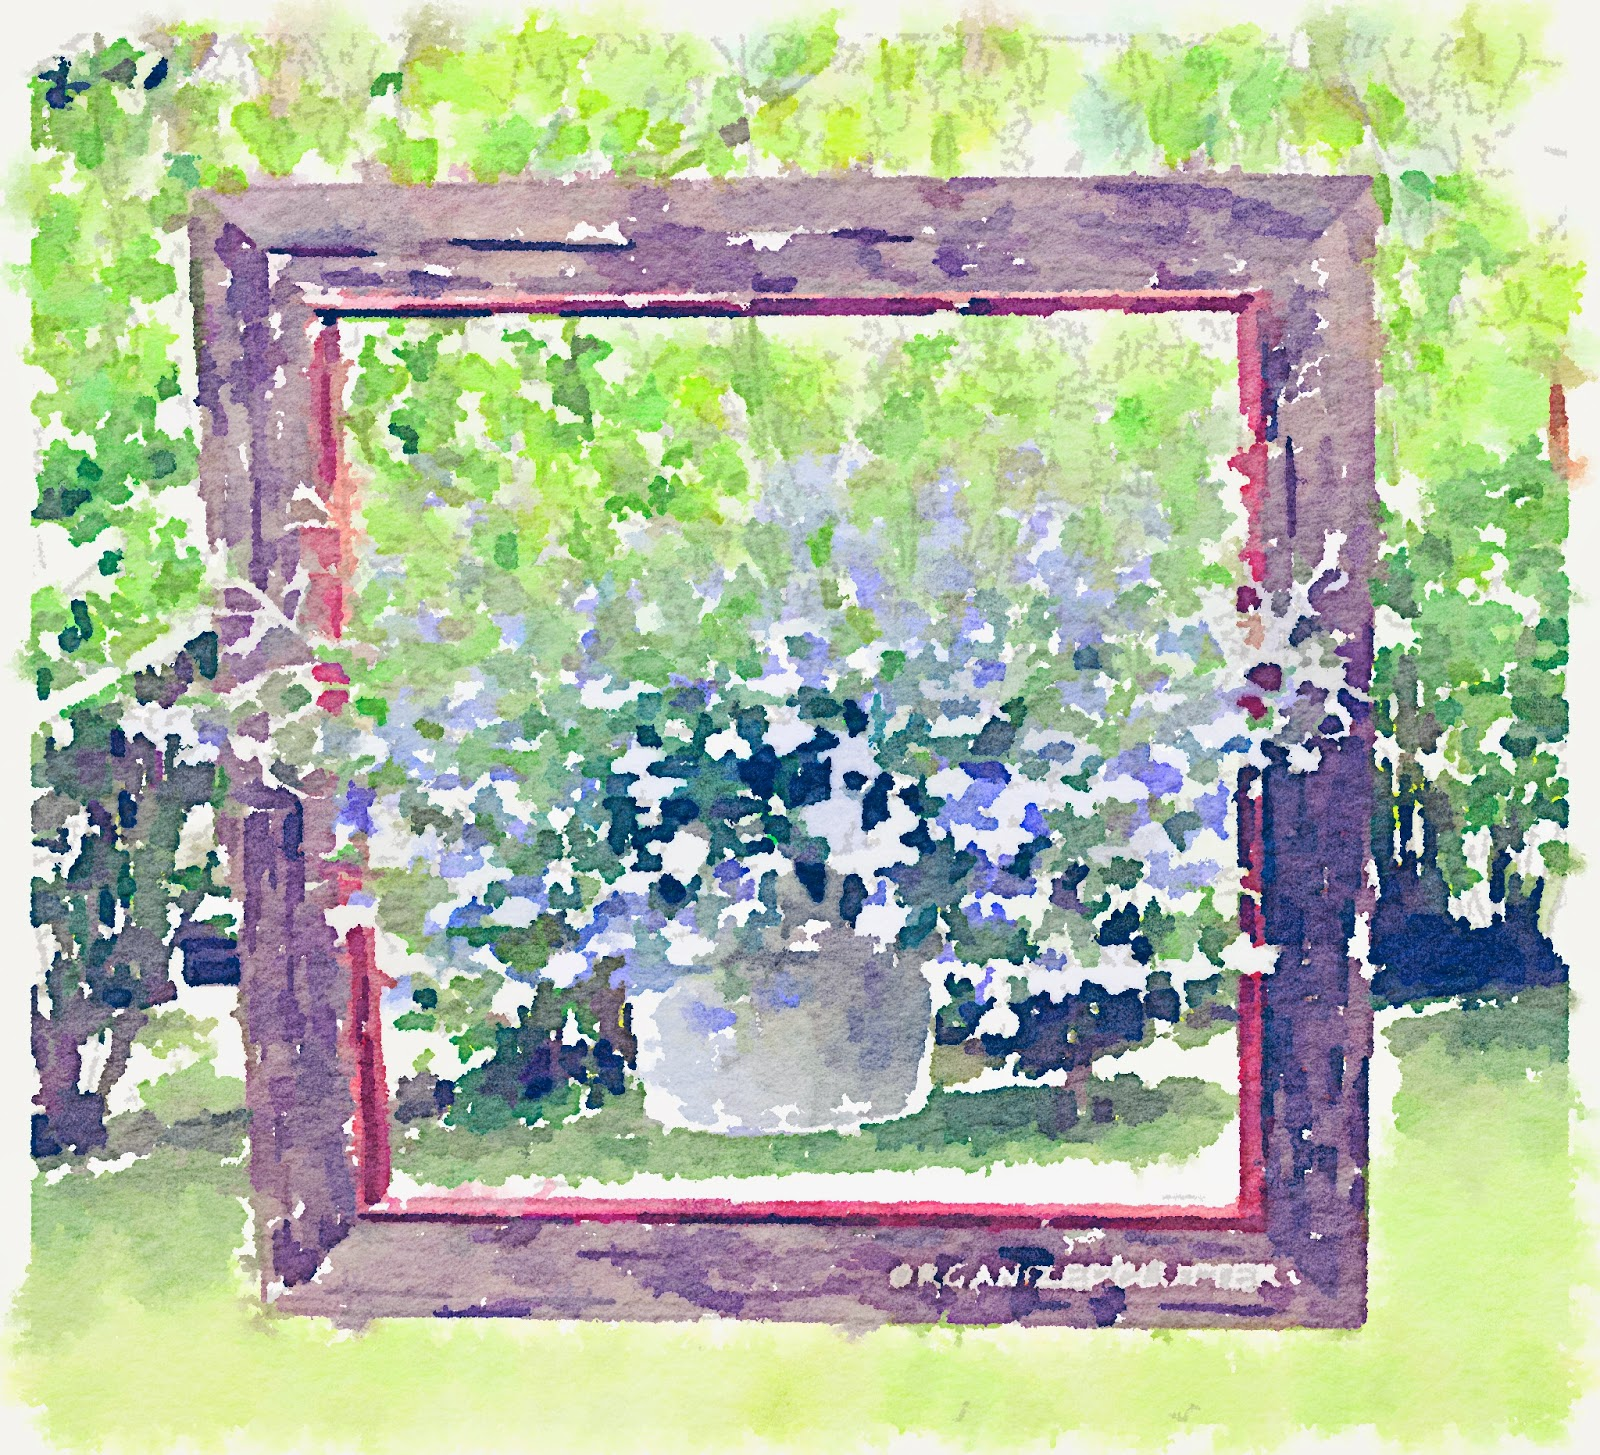 Waterlogue Framed Lobelia www.organizedclutterqueen.blogspot.com